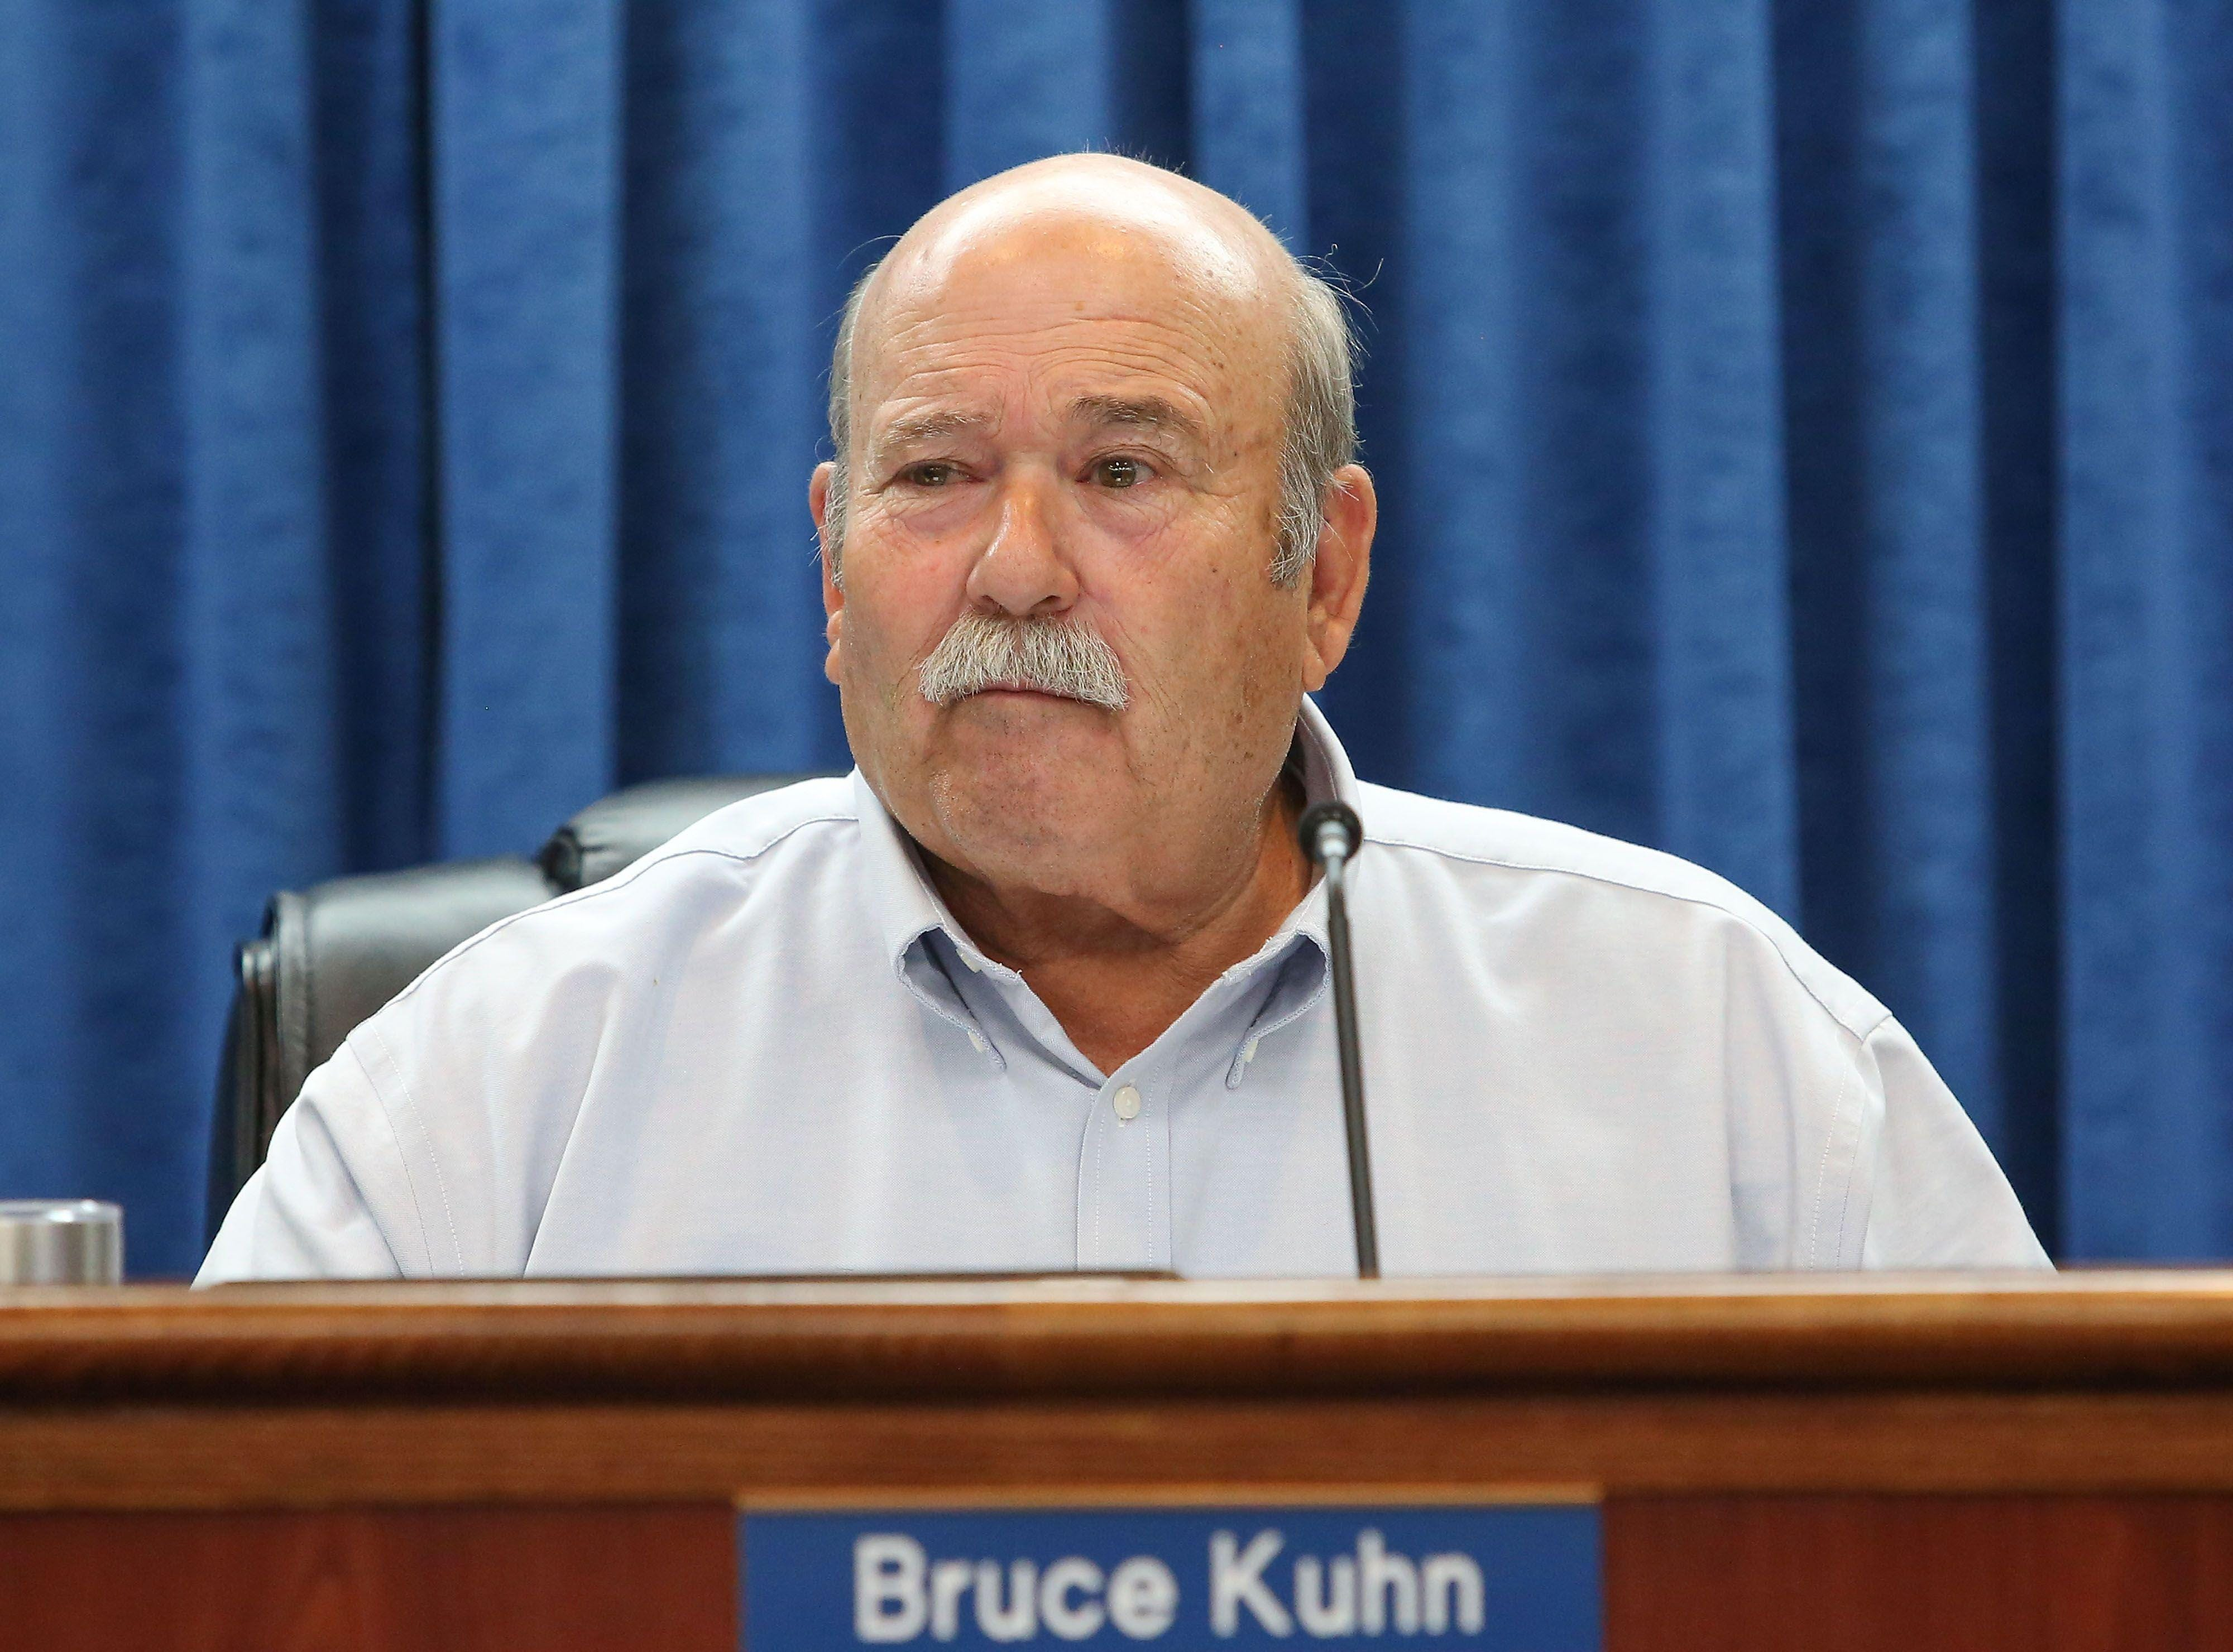 Bruce Kuhn of the Imperial Irrigation District's board of directors, seen at a board meeting on July 18, 2017.